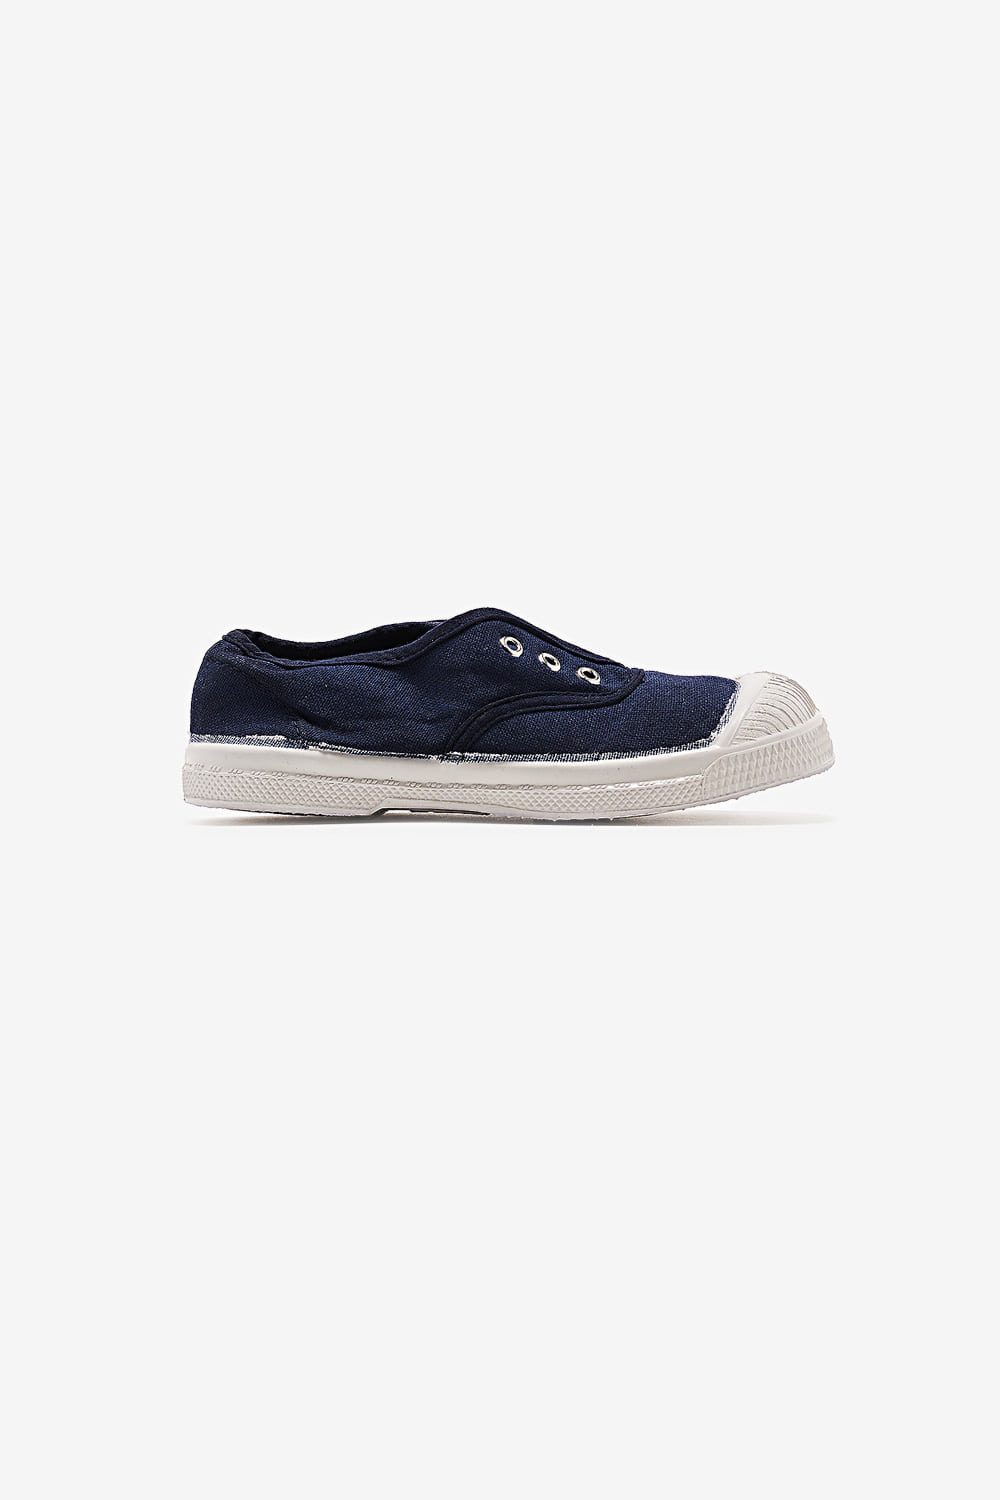 [KID Elly] Navy BS9SSO302NV